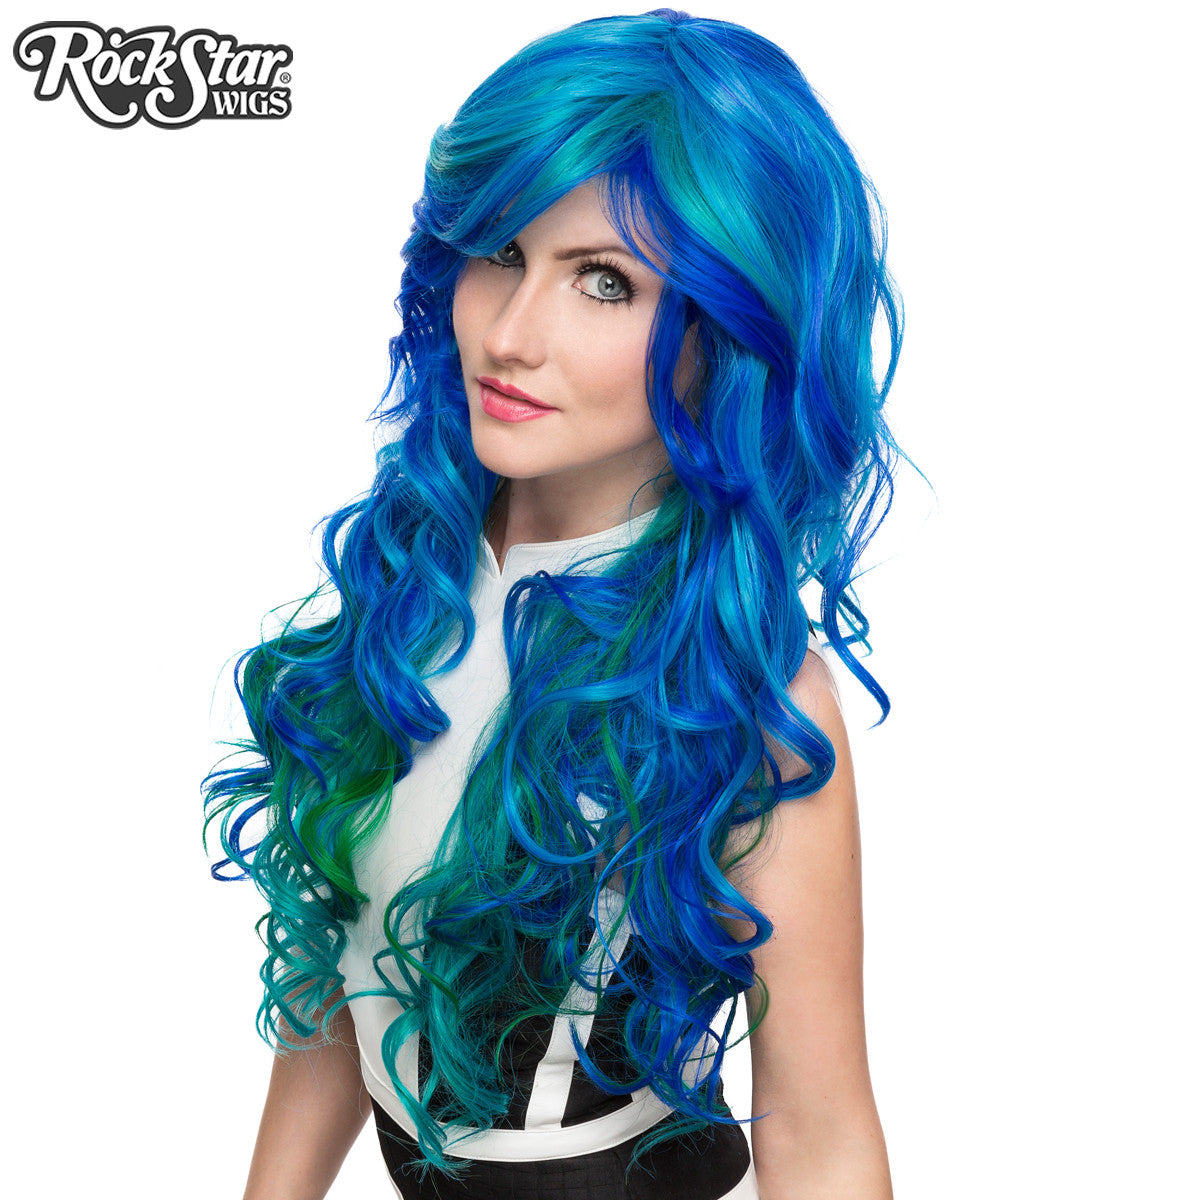 RockStar Wigs® <br> Triflect™ Collection - Mermaid Dream -00225